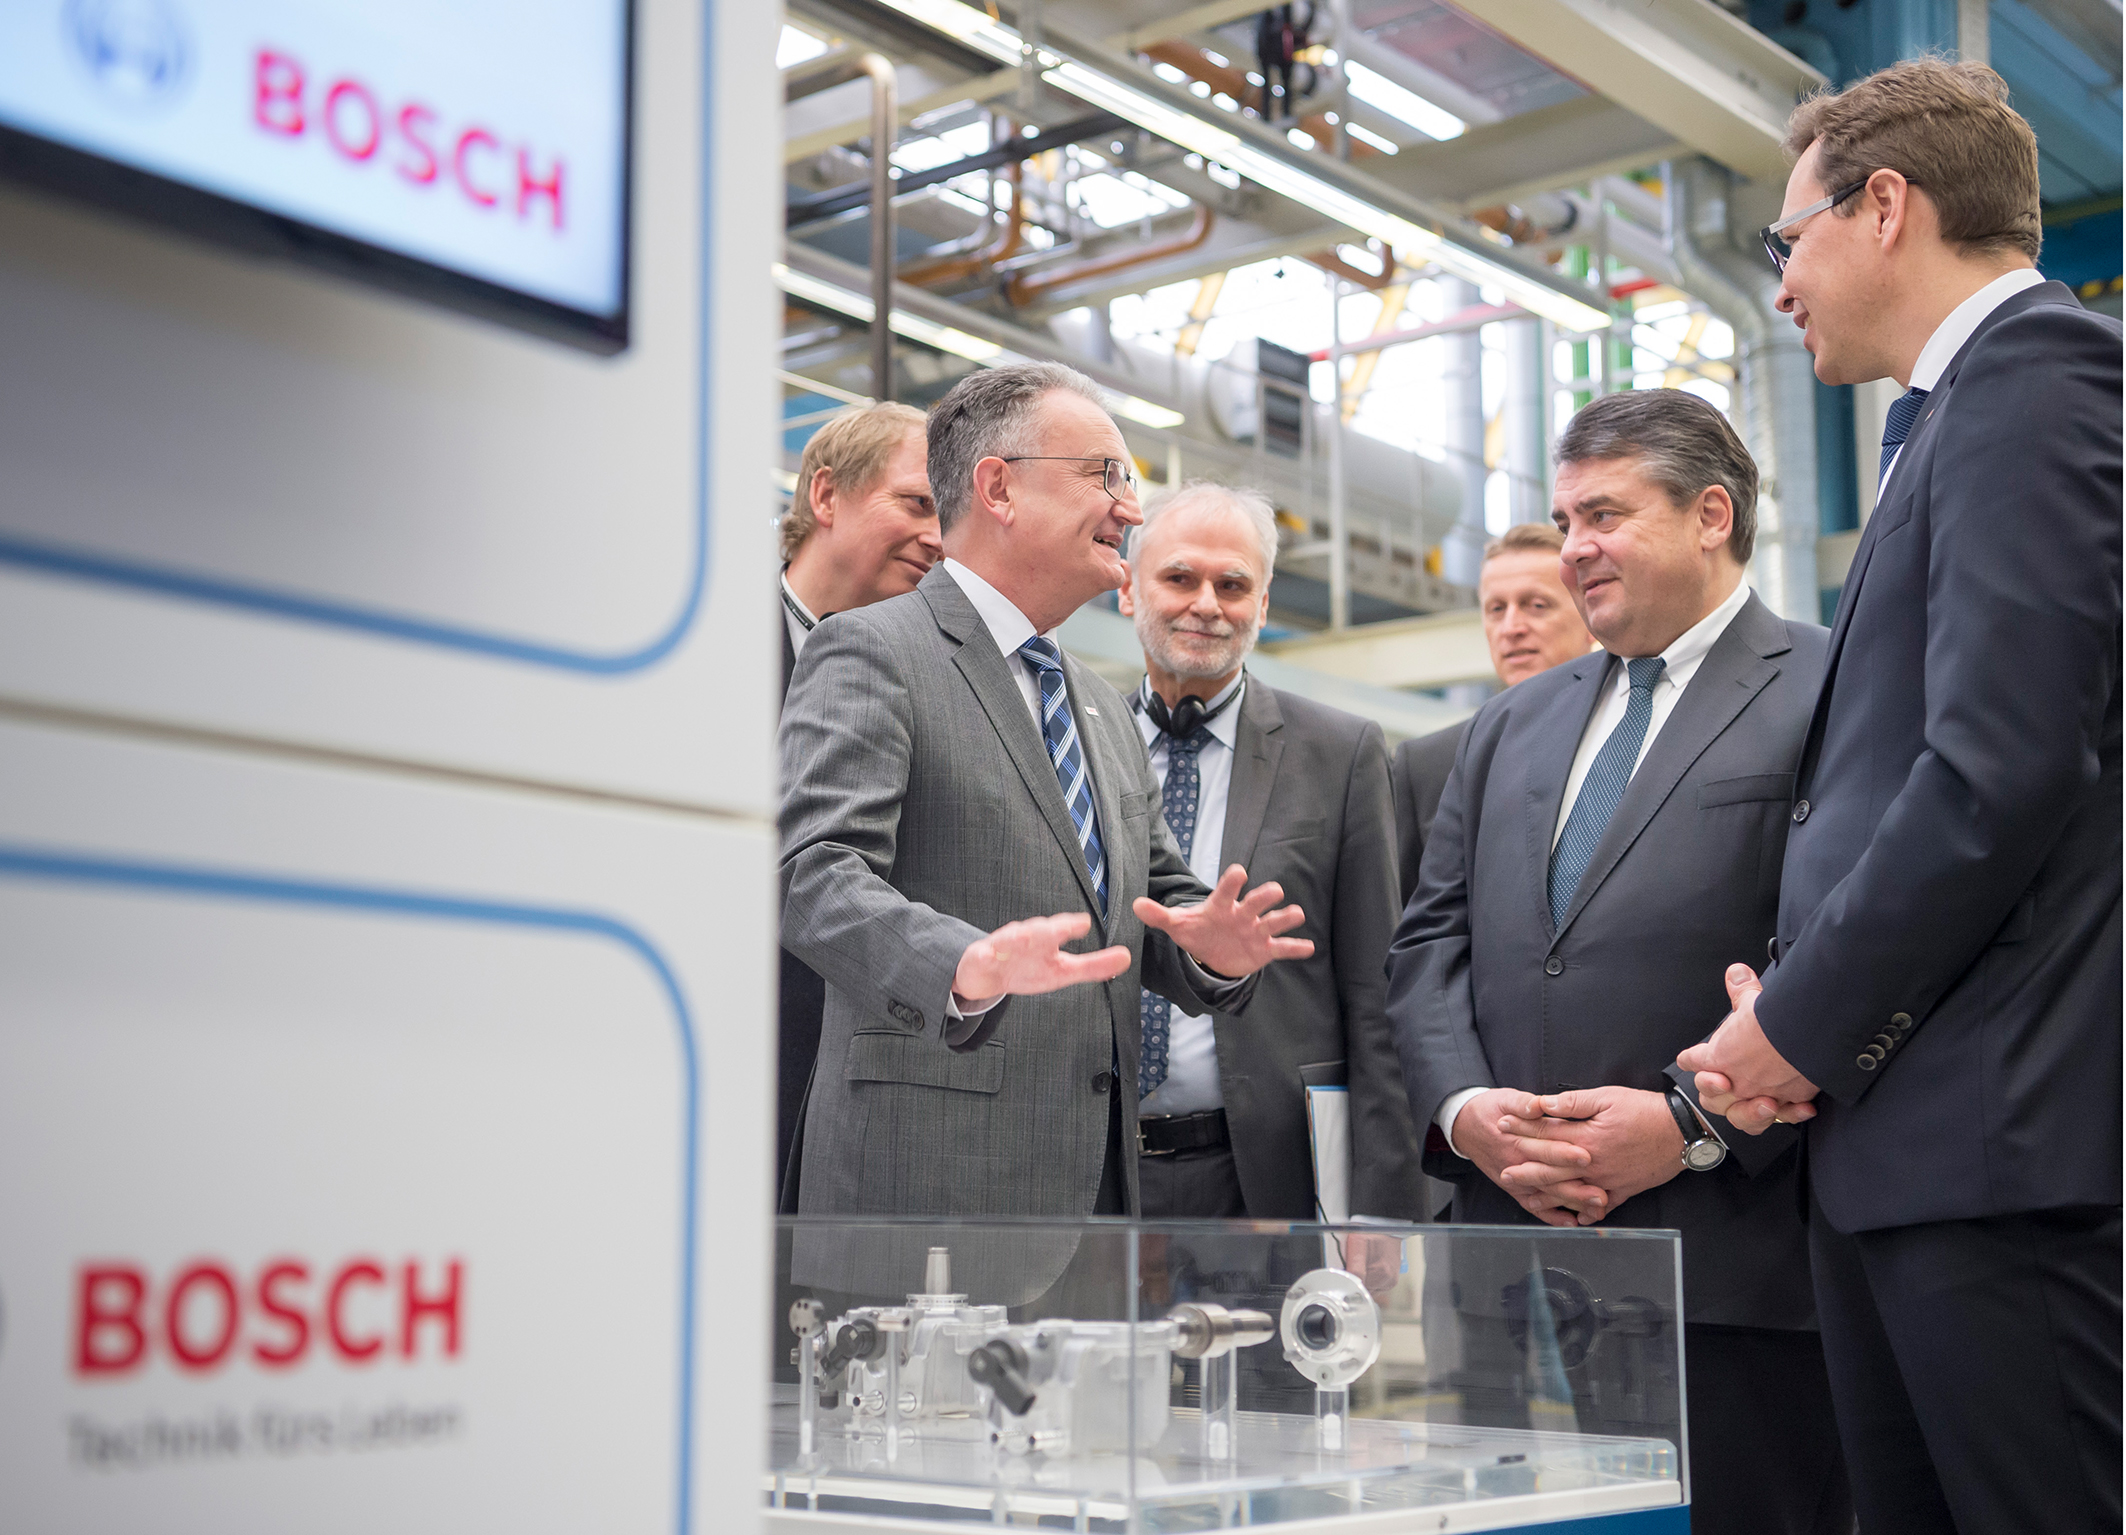 At Bosch, the German Economics Minister finds out about Industry 4.0